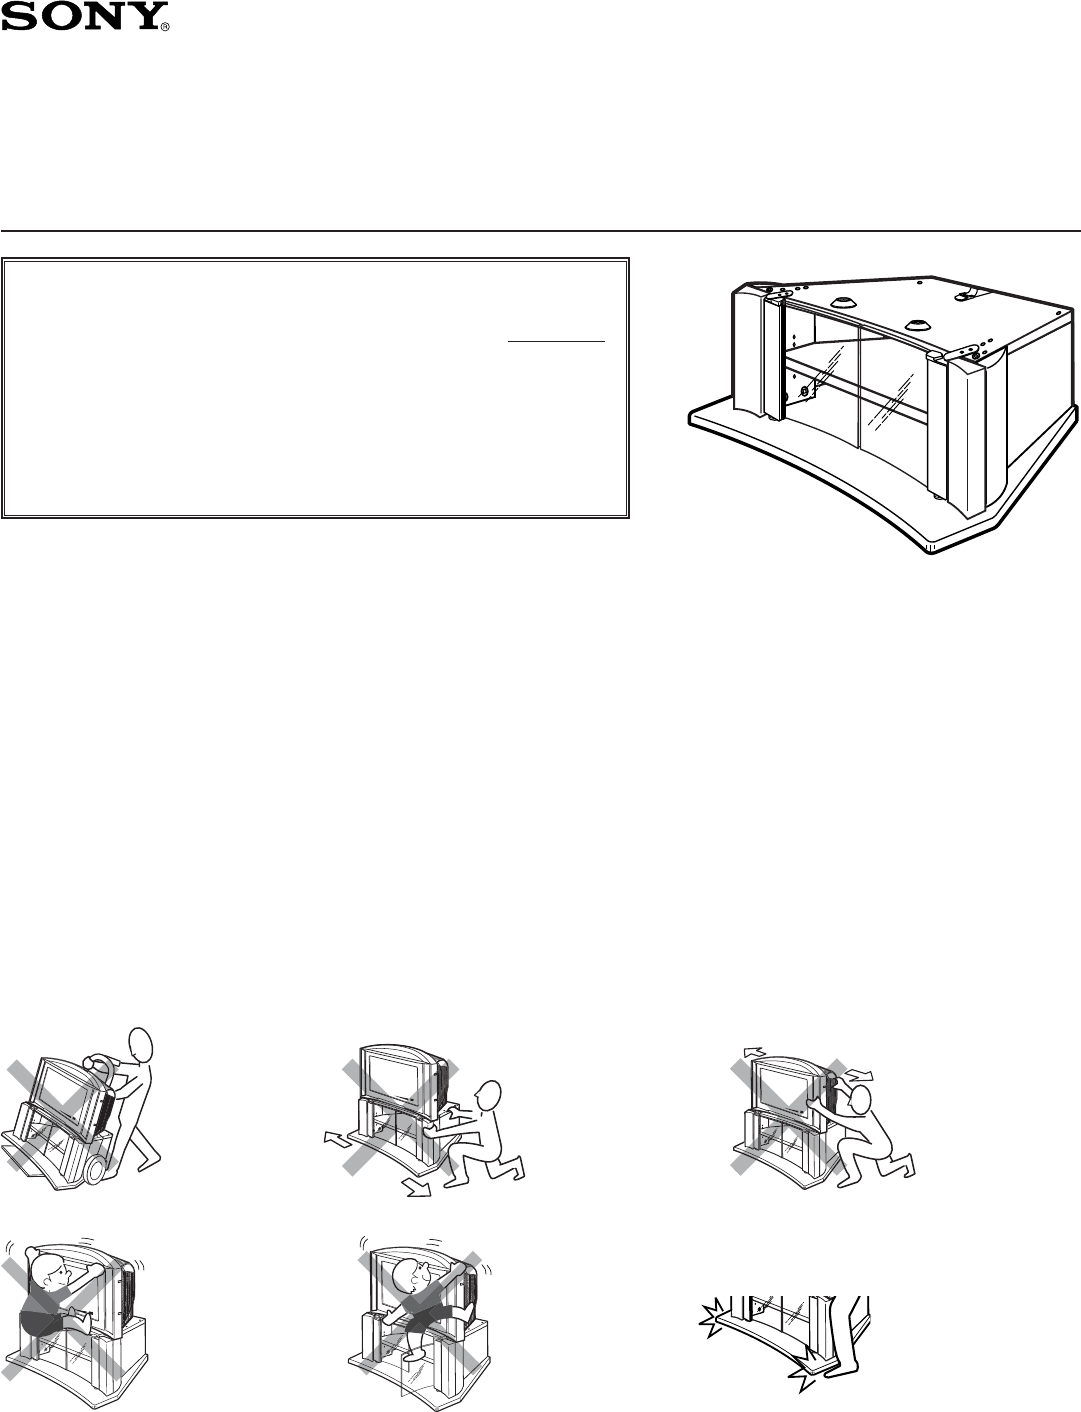 Sony indoor furnishings su 27f2 user guide for Le meuble headsets